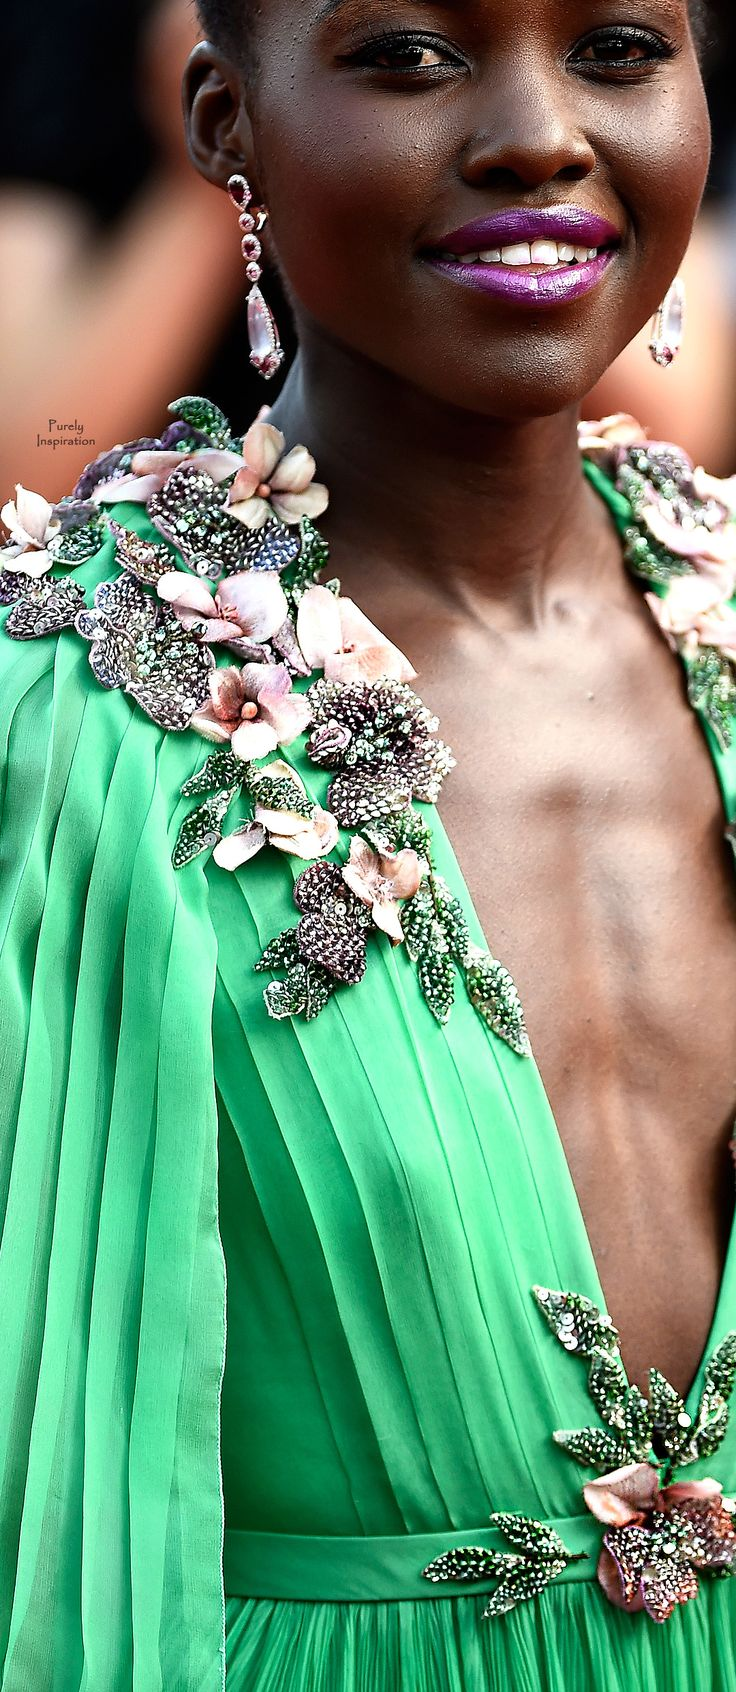 Lupita Nyong'o - Gucci 2015 Cannes Film Festival | Purely Inspiration